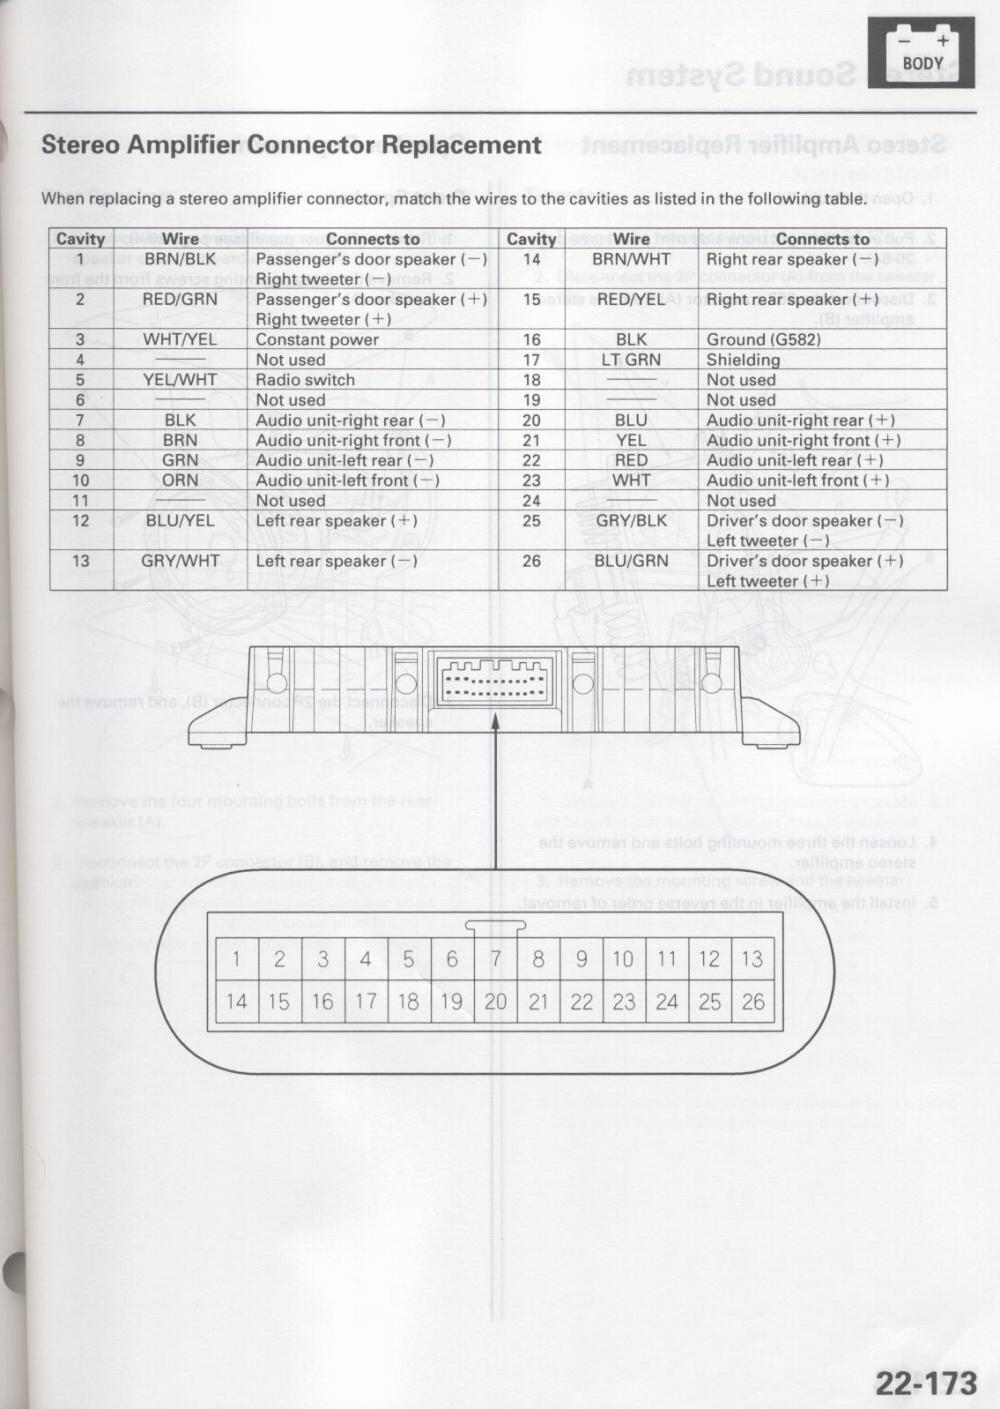 Car Radio Stereo Audio Wiring Diagram Autoradio connector wire ... on acura rsx wiring-diagram, acura mdx battery, acura mdx headlights, acura mdx transmission slipping, acura cl wiring diagram, acura mdx ac diagram, acura mdx belt diagram, acura mdx spark plugs, acura mdx engine problems, acura mdx brakes, acura mdx alternator diagram, acura mdx transmission problems, acura mdx relay, acura rl wiring diagram, acura mdx fuel pump, acura mdx oil pump, acura tl wiring diagram, acura engine diagrams, acura mdx parts diagram, acura mdx fuse box,